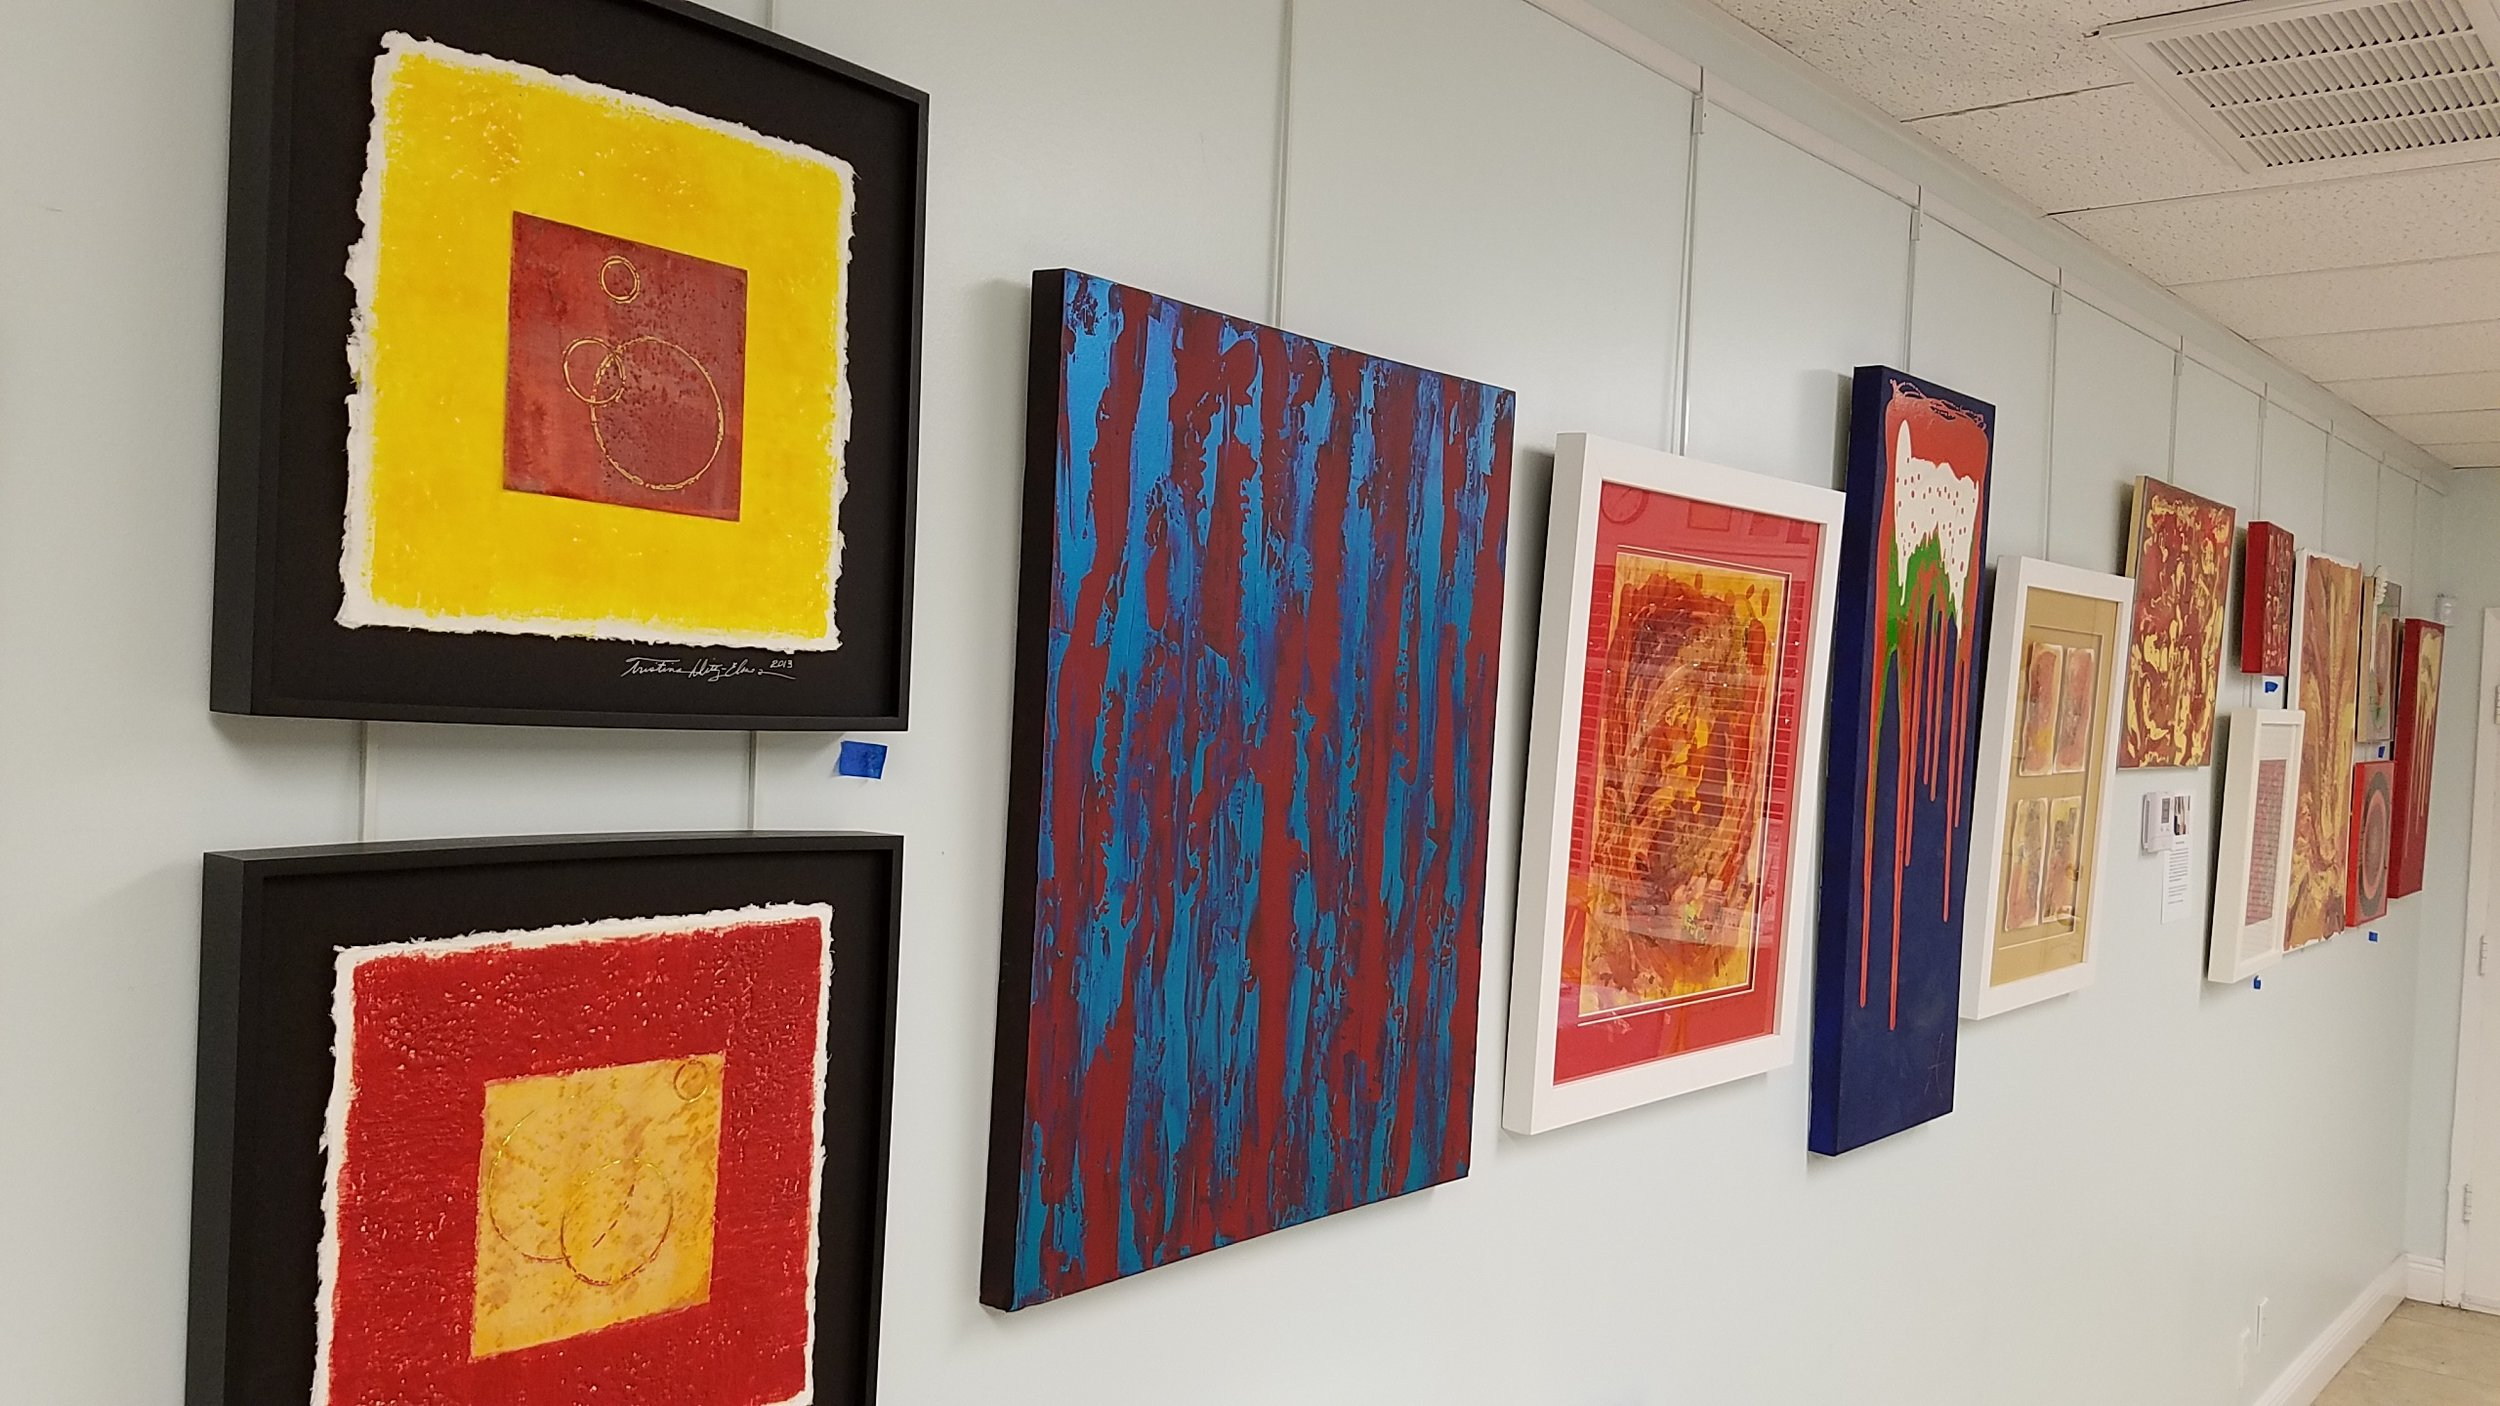 Sneak peek at my artwork going up for the TRAX Art Studios RED HOT SUMMER Art Show.